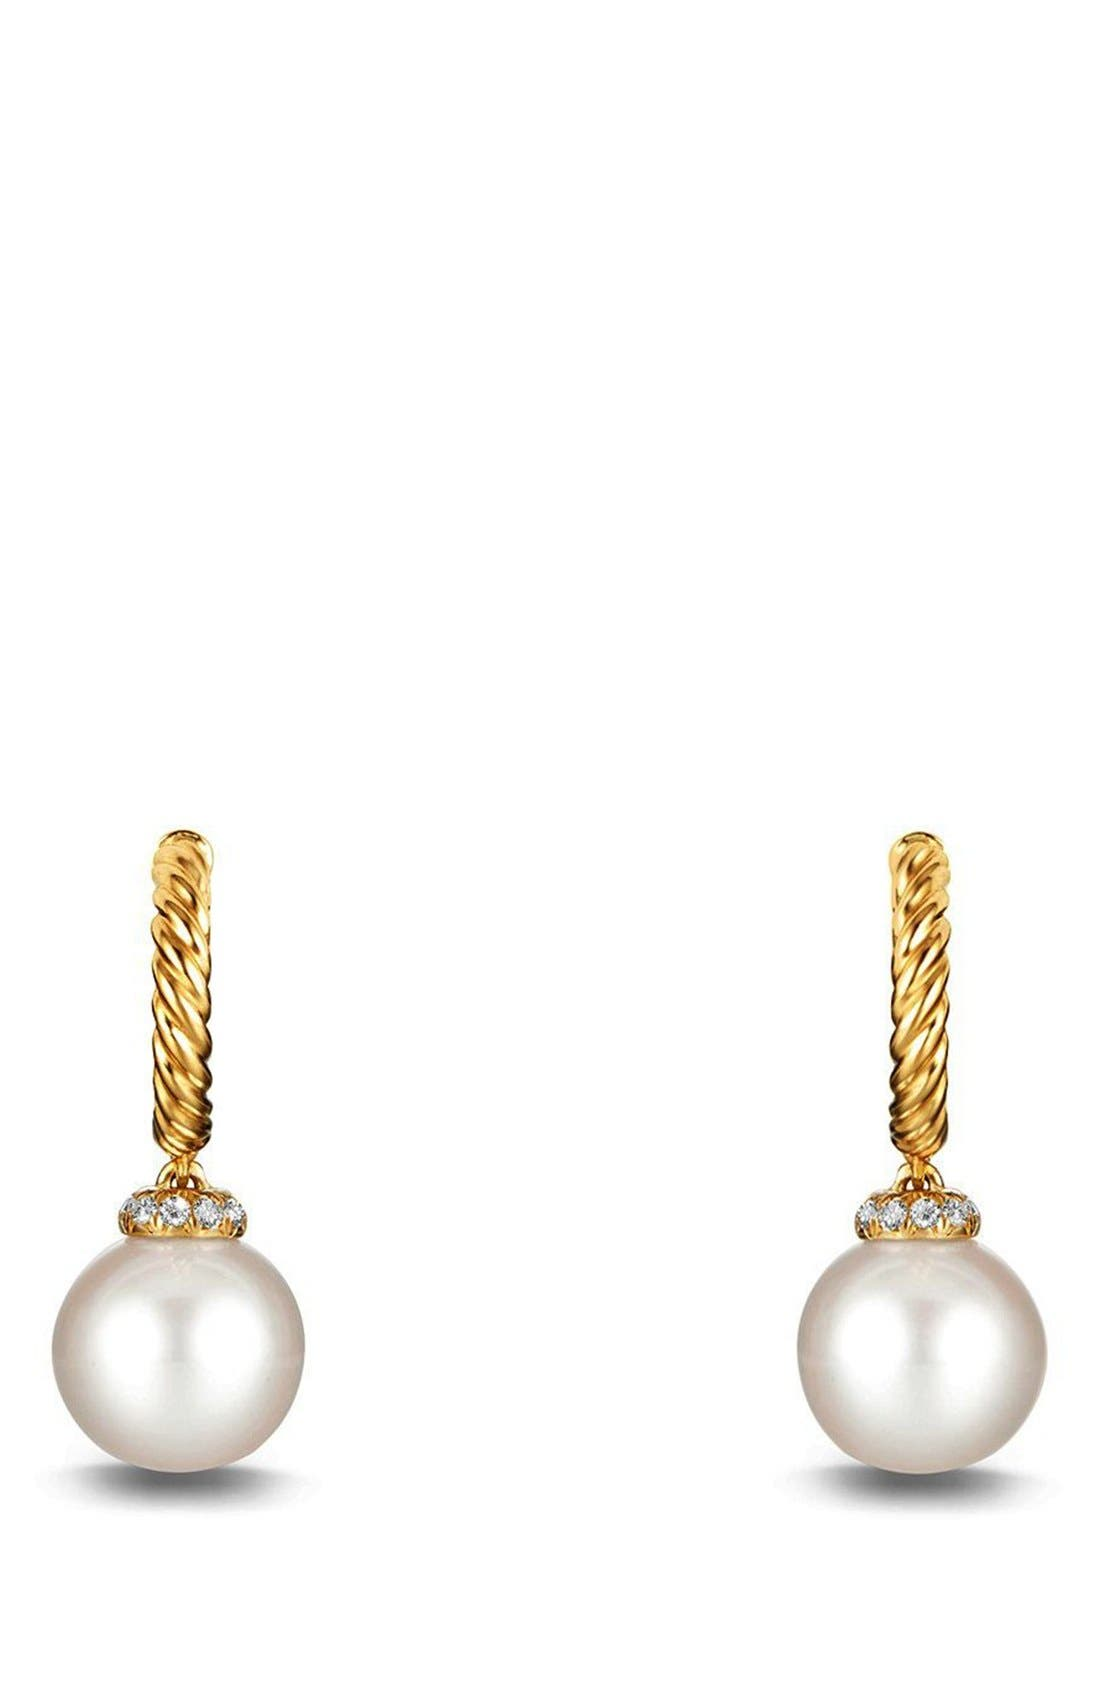 'Solari' Hoop Earring with Diamonds and Pearls in 18K Gold,                             Main thumbnail 1, color,                             PEARL